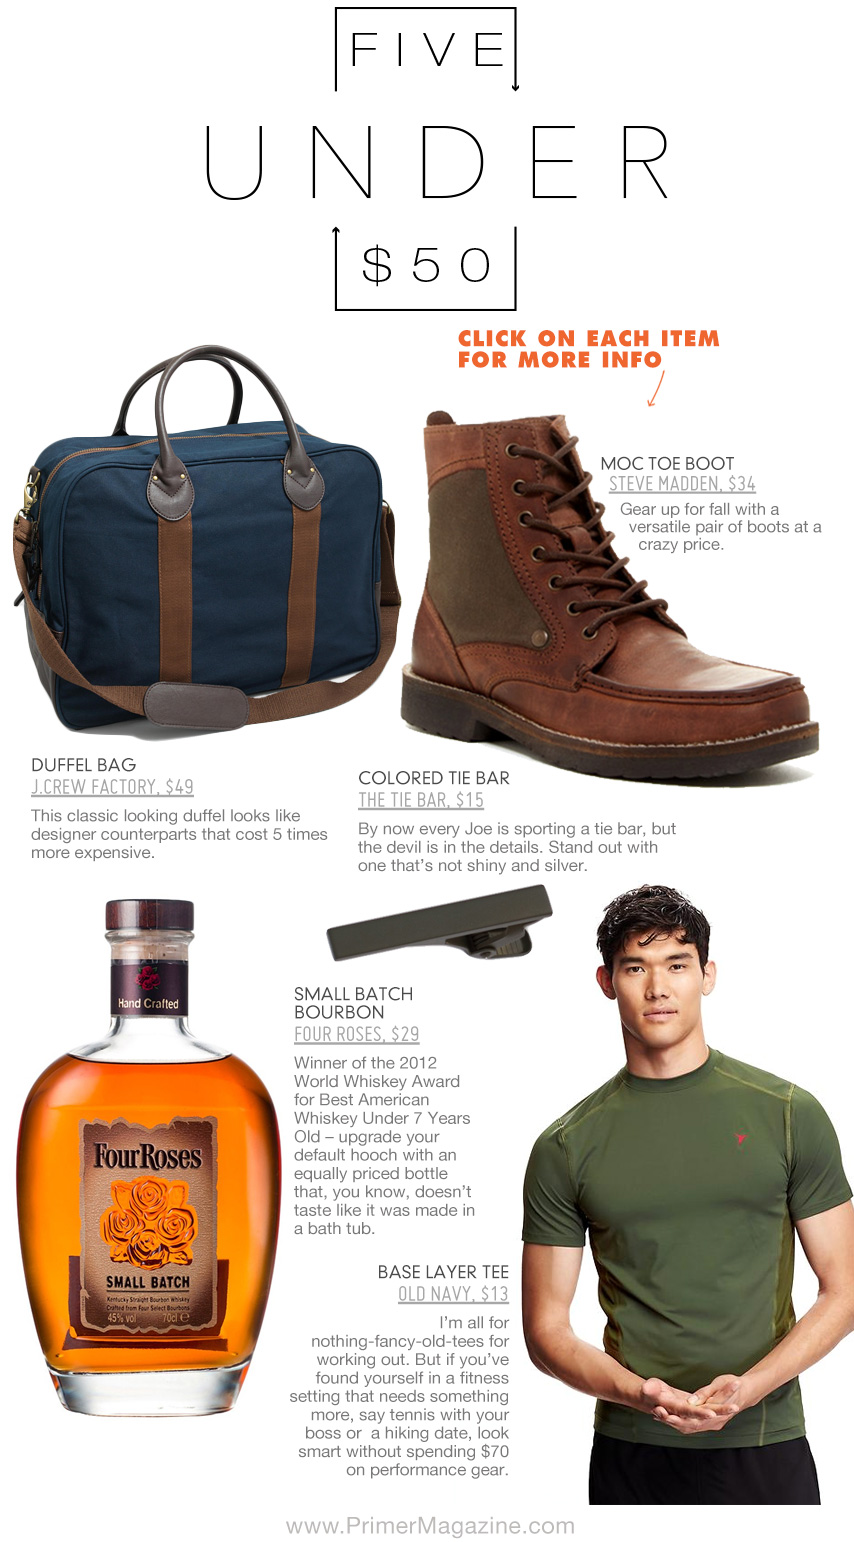 5 Under 50 with briefcase, boots, Four Roses Bourbon, Tie Bar, and workout shirt